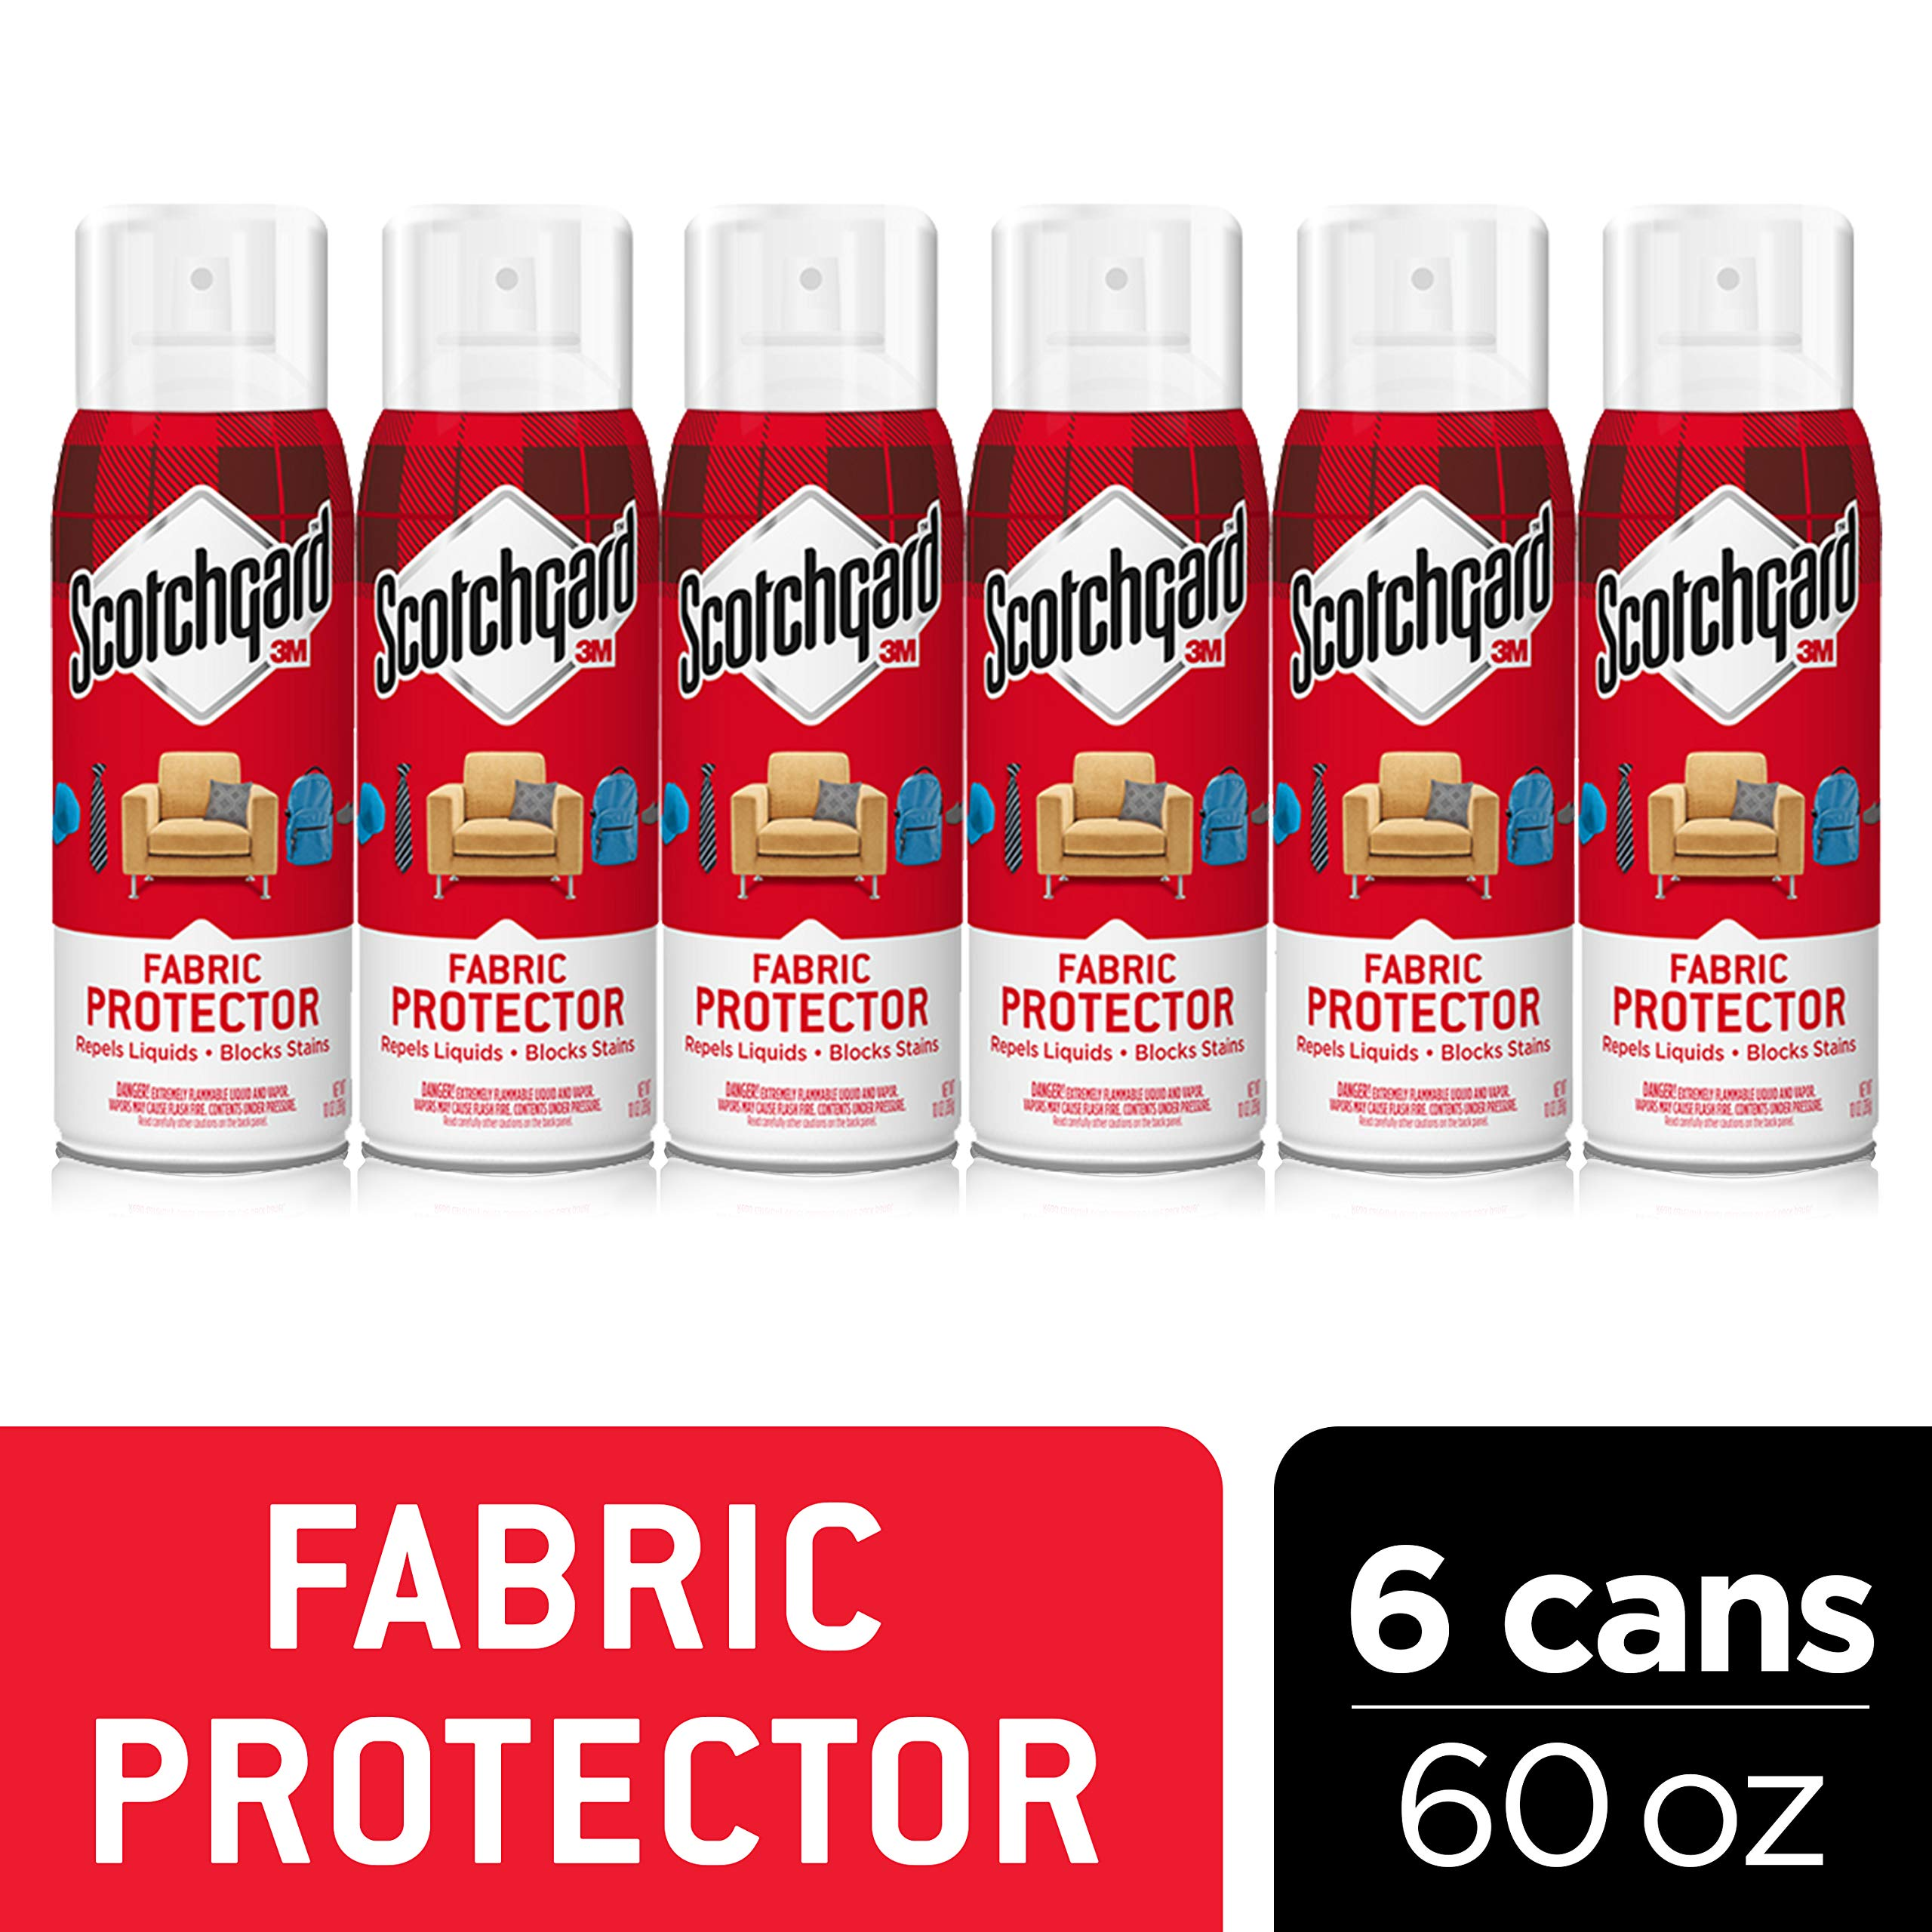 Scotchgard Fabric & Upholstery Protector, Repels Liquids, Blocks Stains, 60 Ounces by Scotchgard